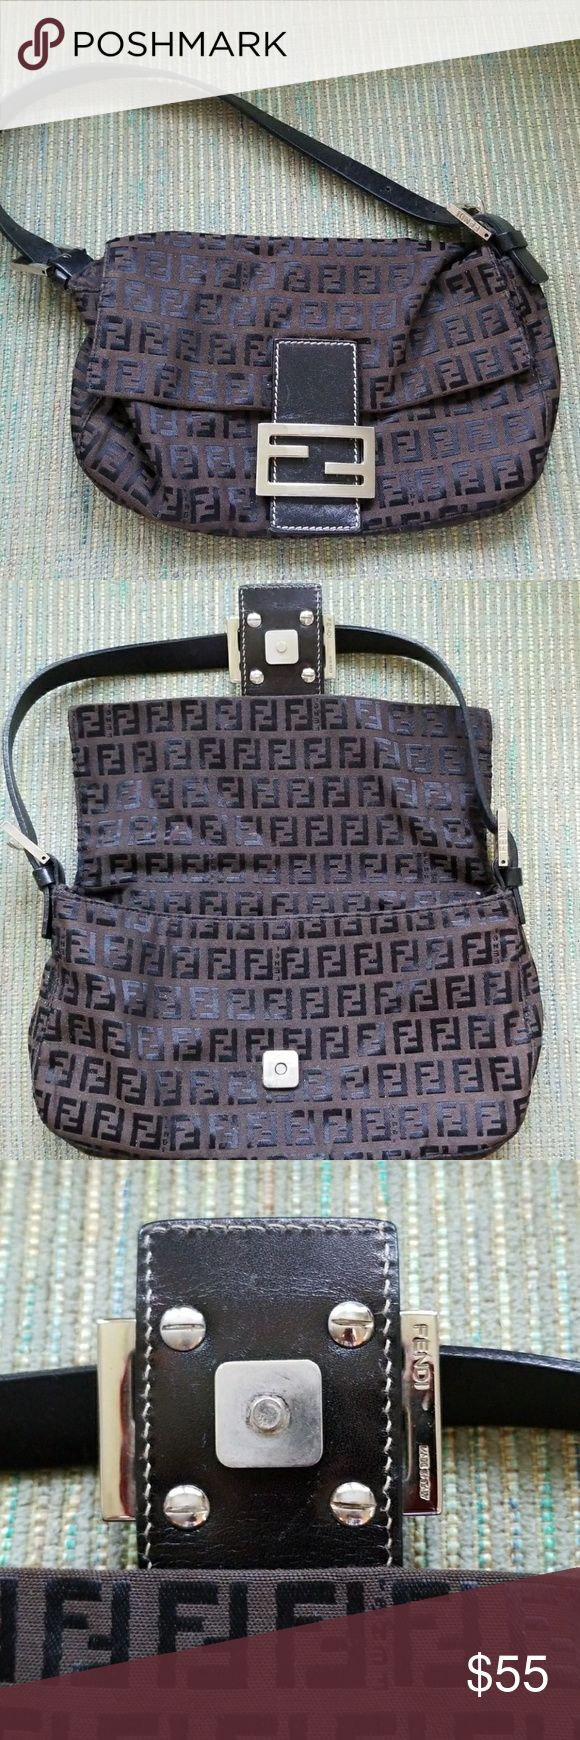 Authentic FENDI Baguette Very well-maintained authentic dark-brown Fendi baguette with silver hardware and logo zucca pattern. BEST PRICE ON POSH!  Great condition. Minor scuffing on front hardware. Fendi Bags